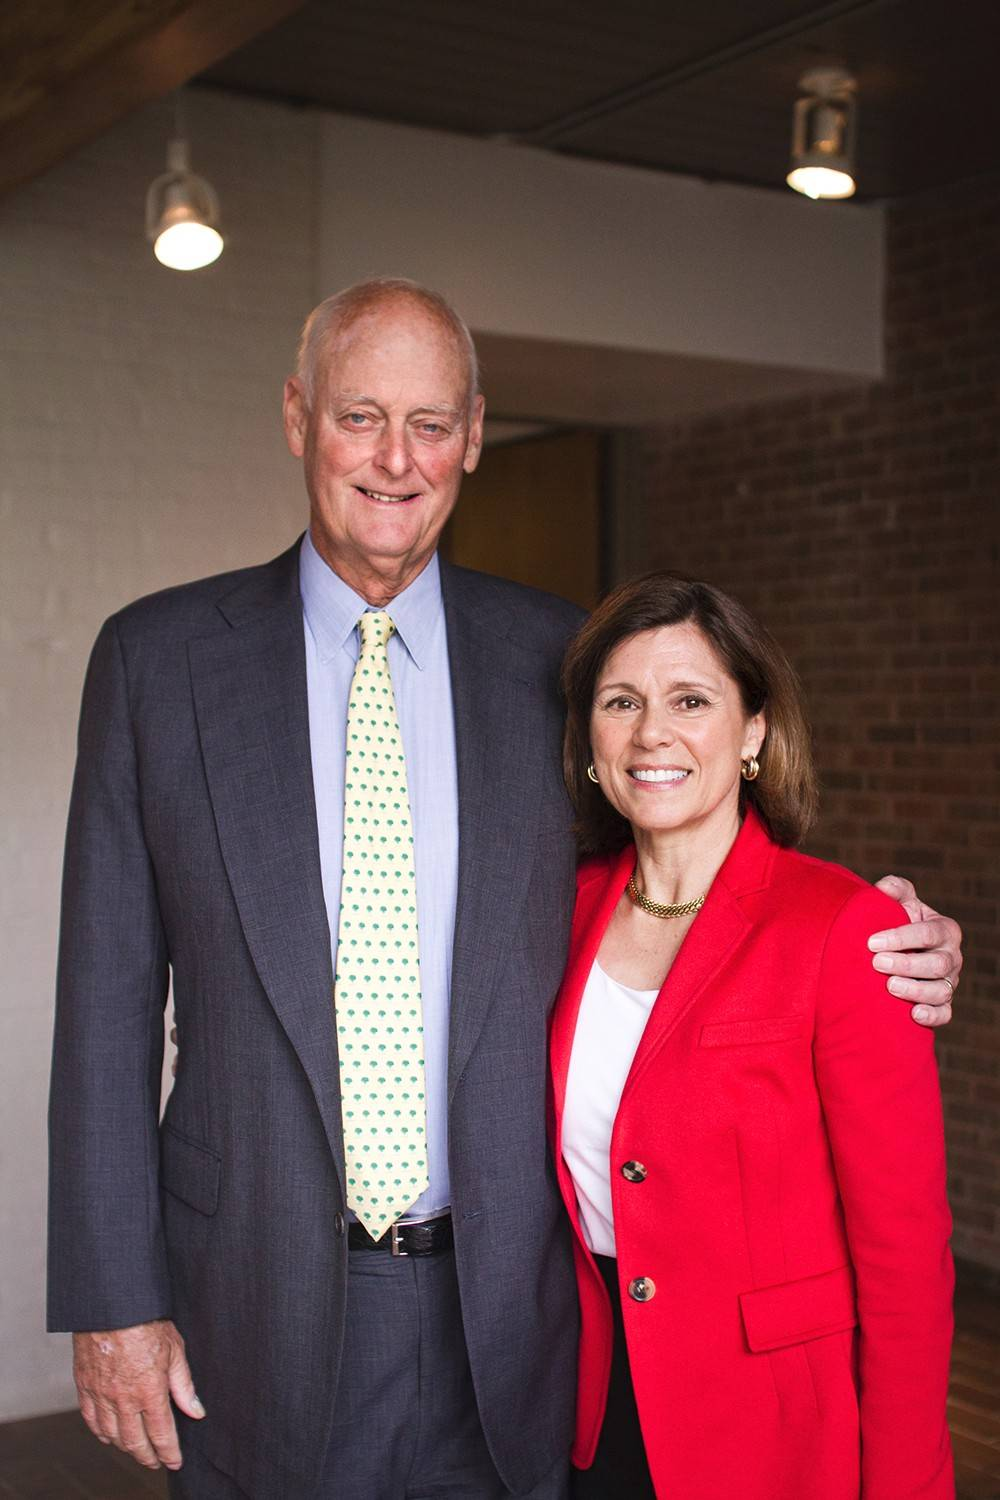 Woodlands Academy of the Sacred Heart in Lake Forest announced Wednesday that alumna Susan Brennan Morrison and her husband, Bob, provided a $1 million endowment gift to the Catholic college preparatory high school for young women.